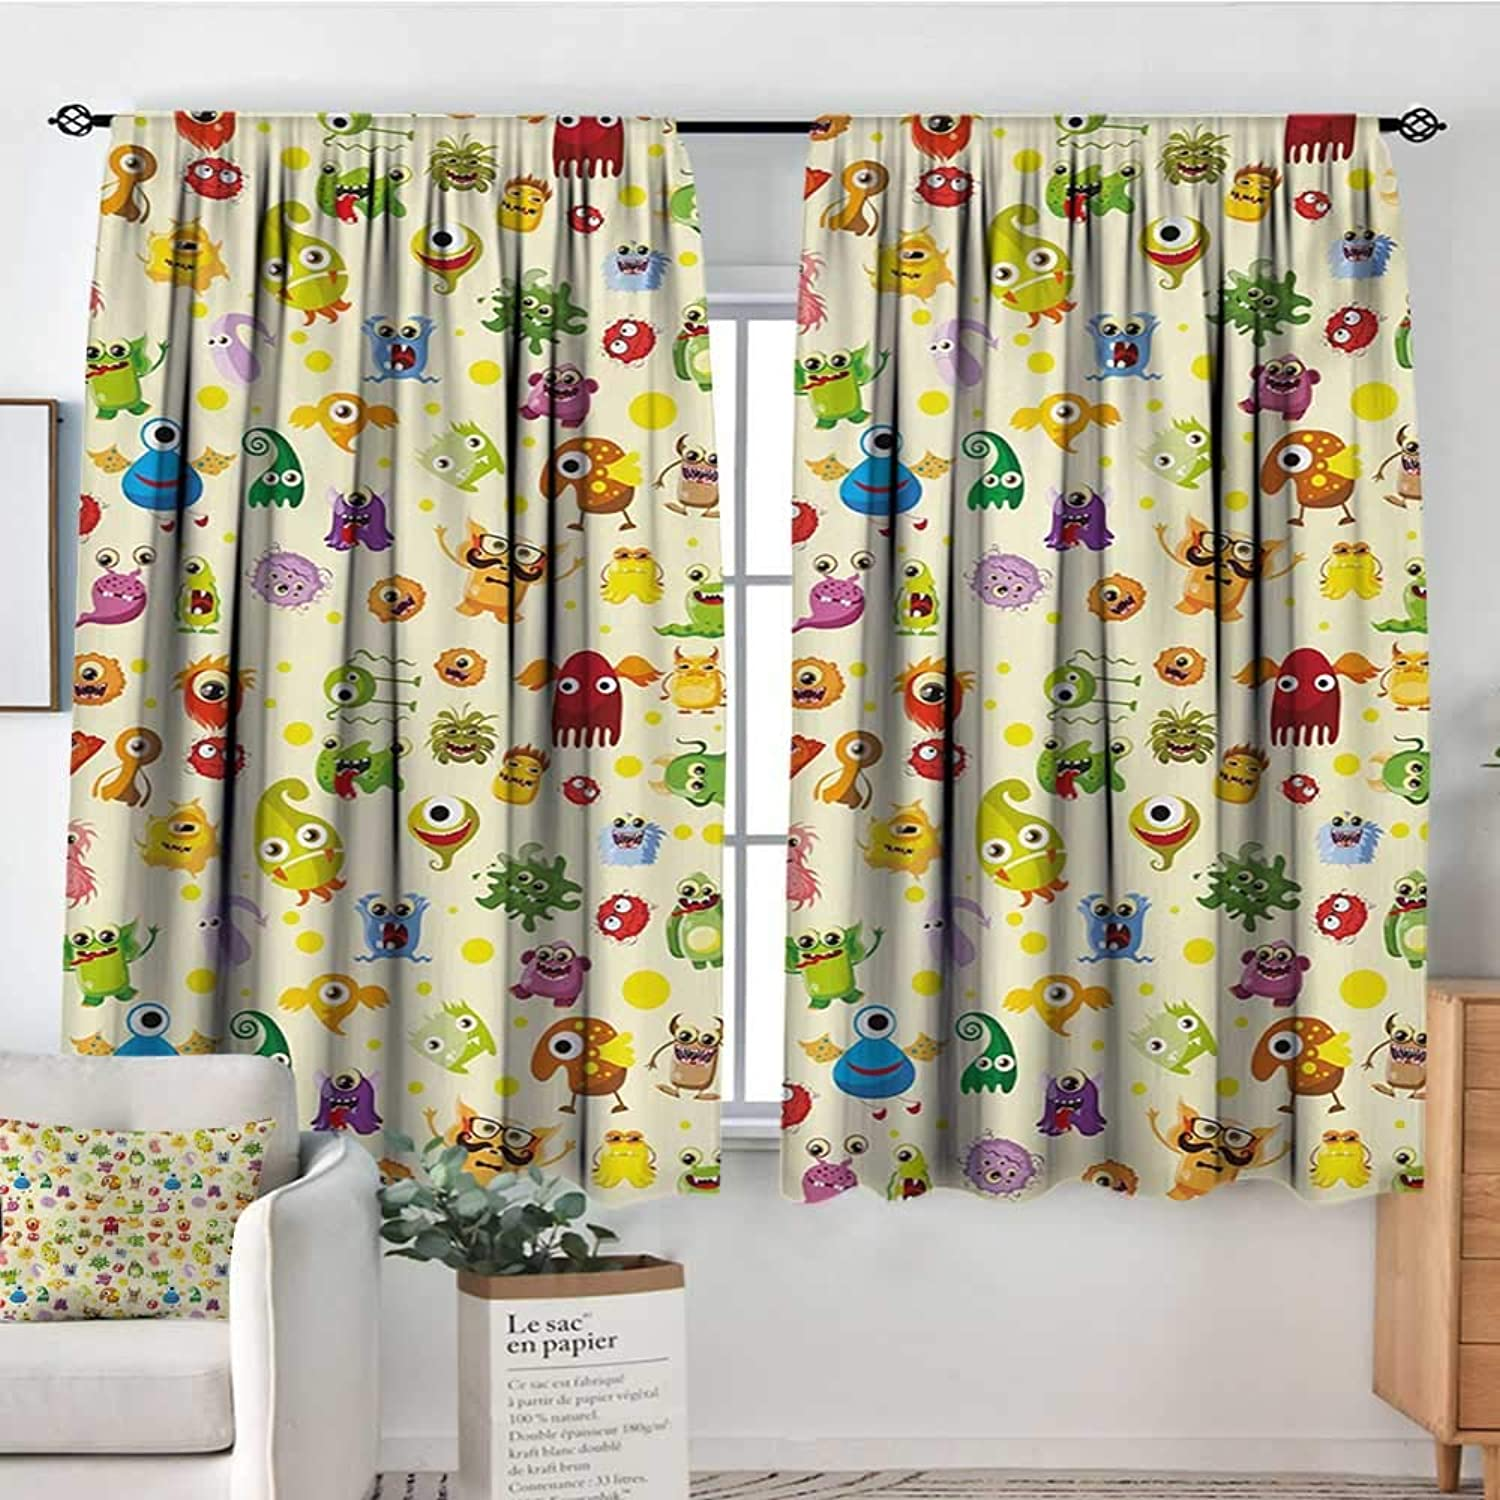 Elliot Dgoldthy Home Decoration Thermal Insulated Curtains Kids,Drawings Different Cartoon Style Characters Cute Monsters Funny Animals and Mutants,Multicolor,for Bedroom,Nursery,Living Room 55 x45